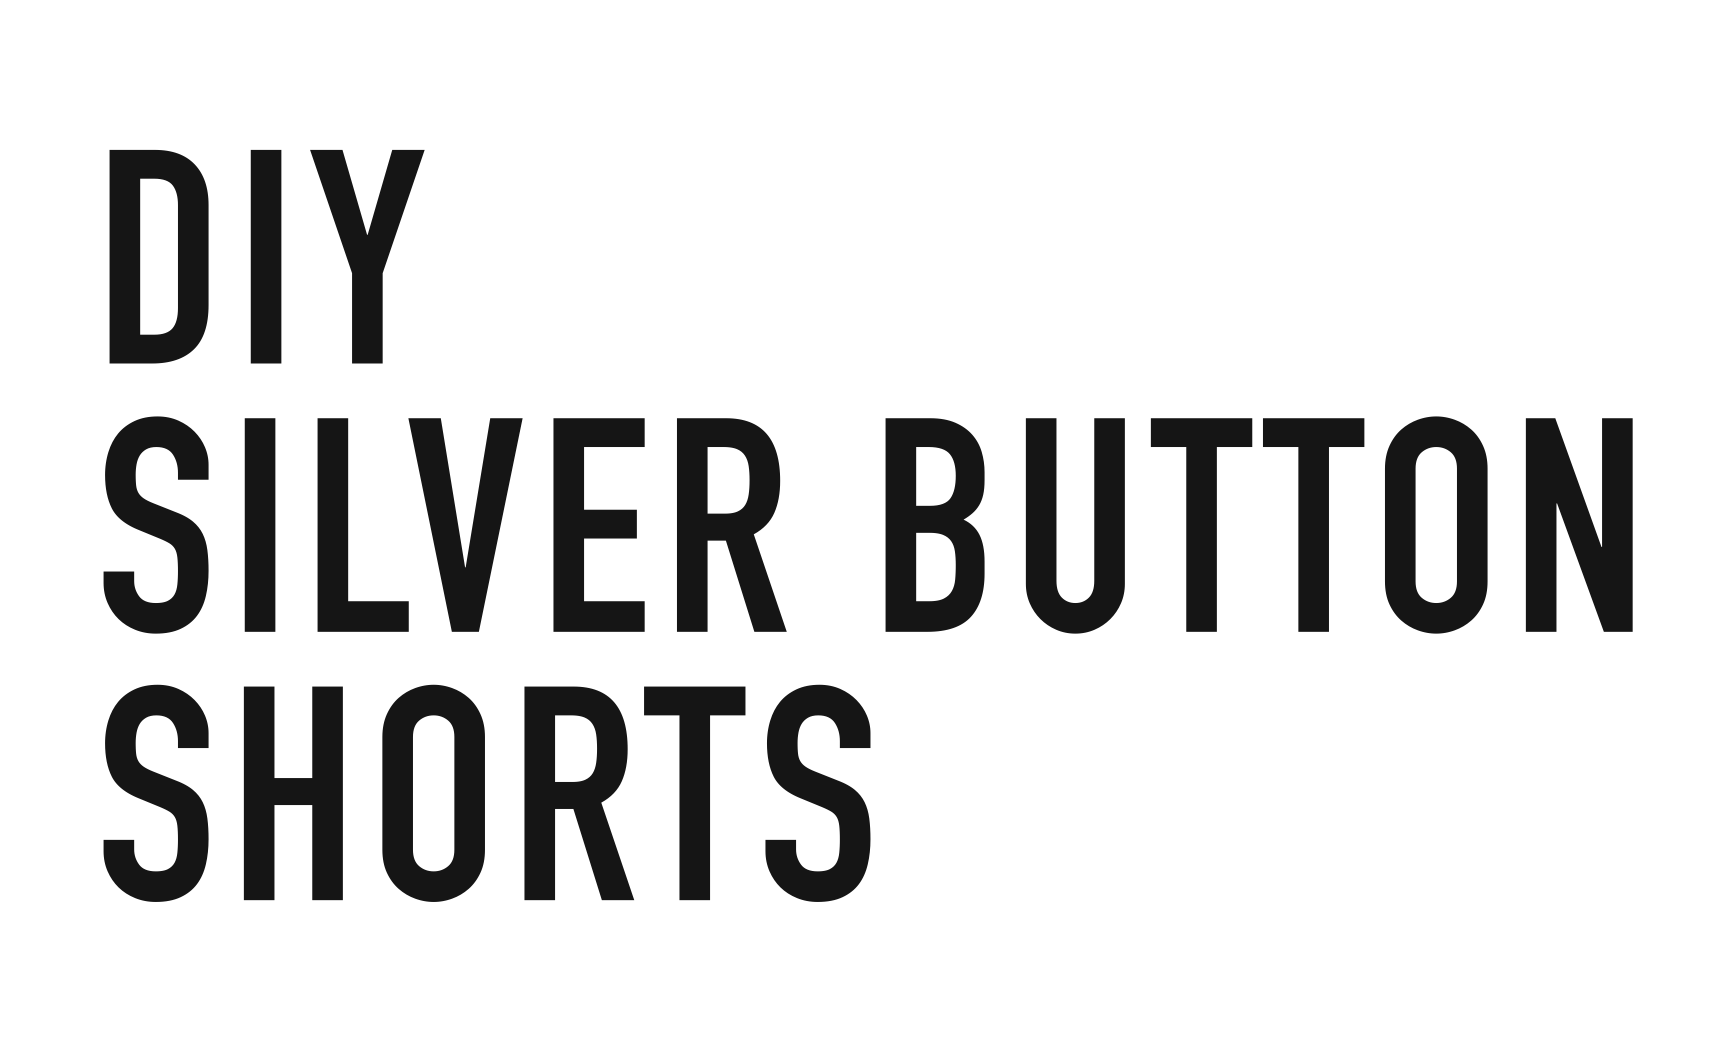 SilverButtonShortsGraphic.png